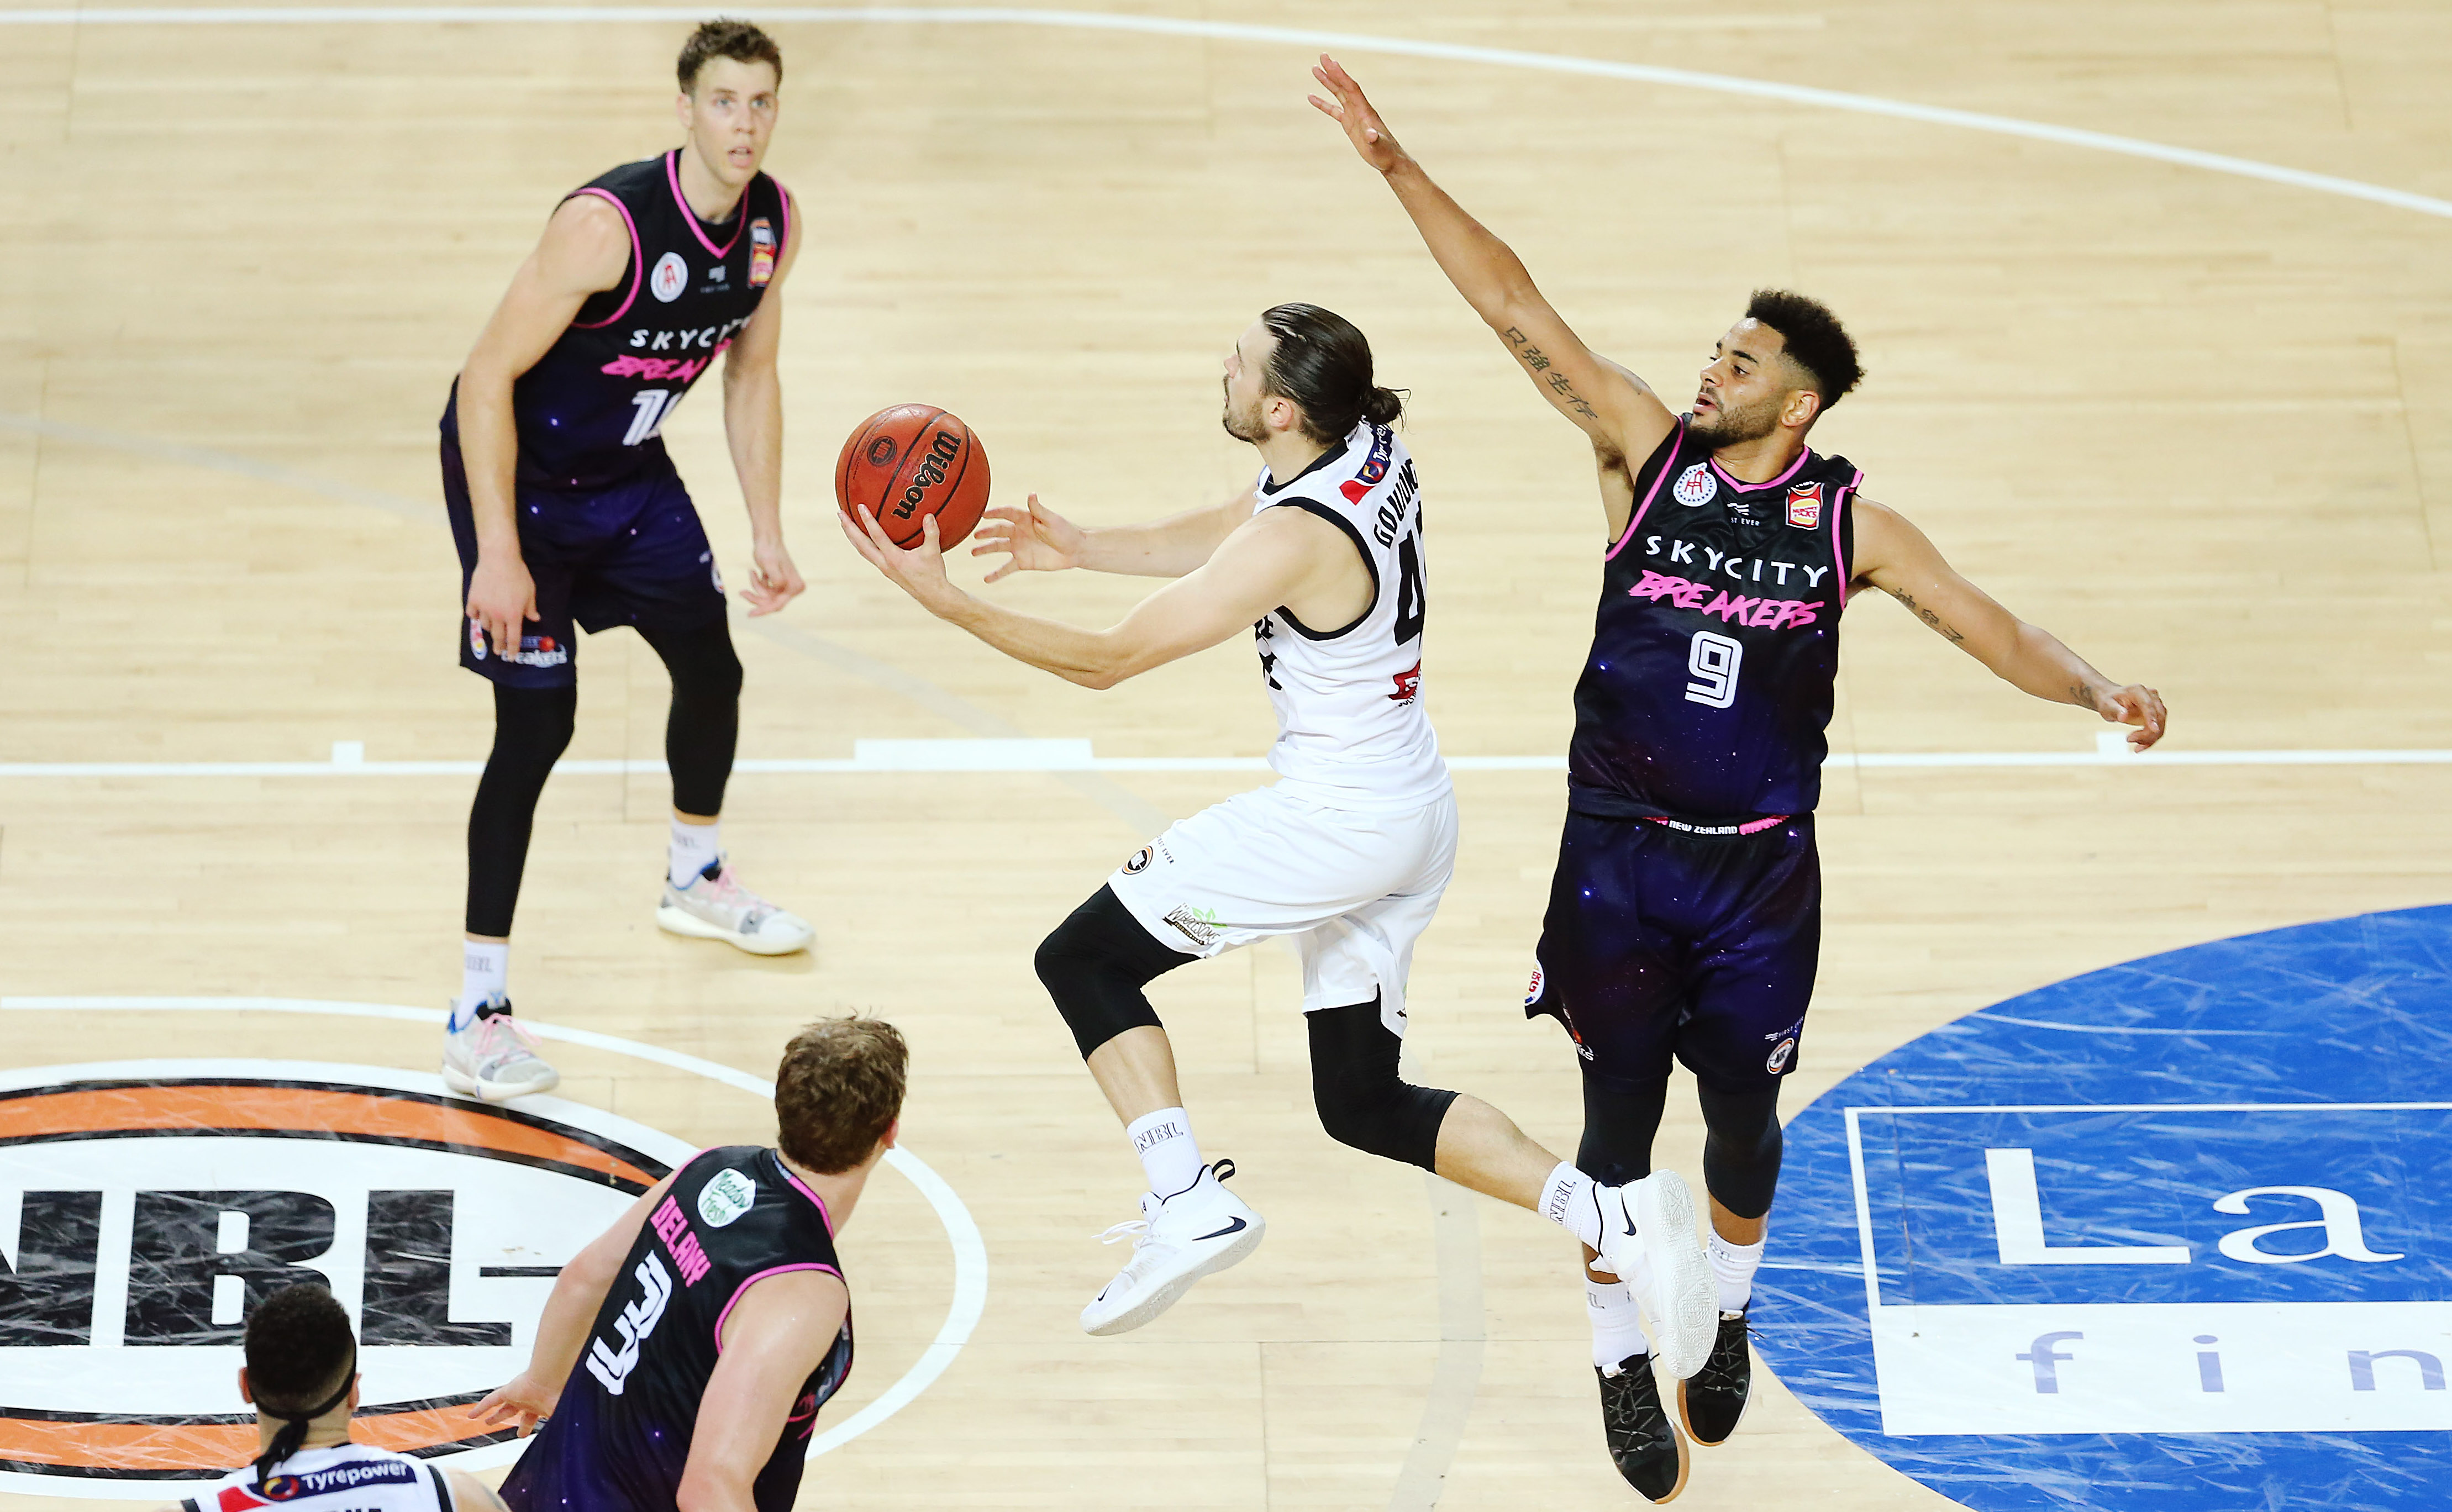 NBL Players, Coaches at the FIBA World Cup